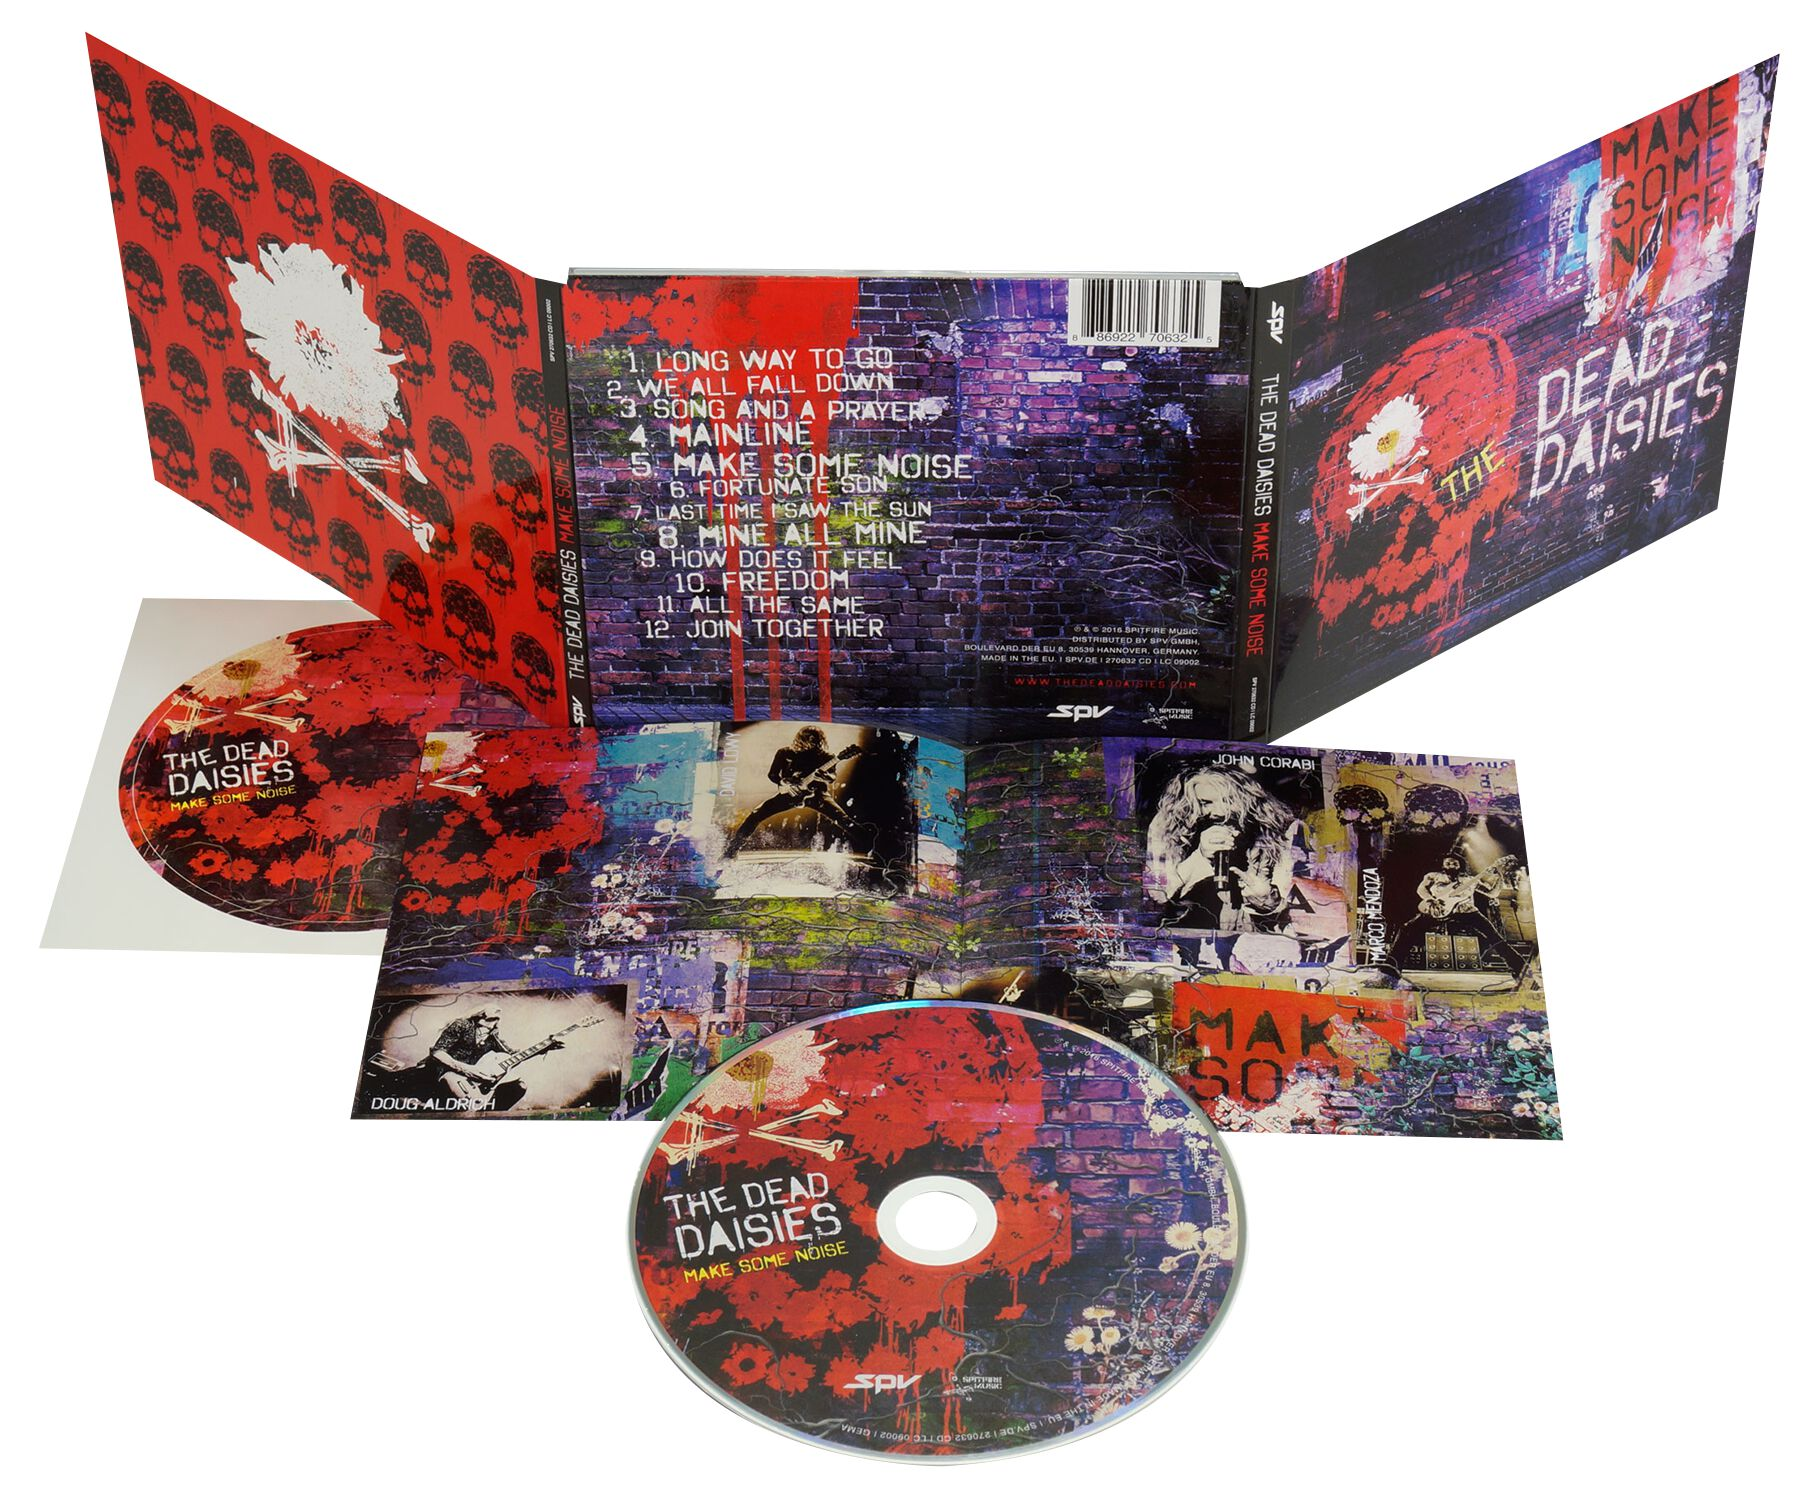 The Dead Daisies Make some noise CD Standard